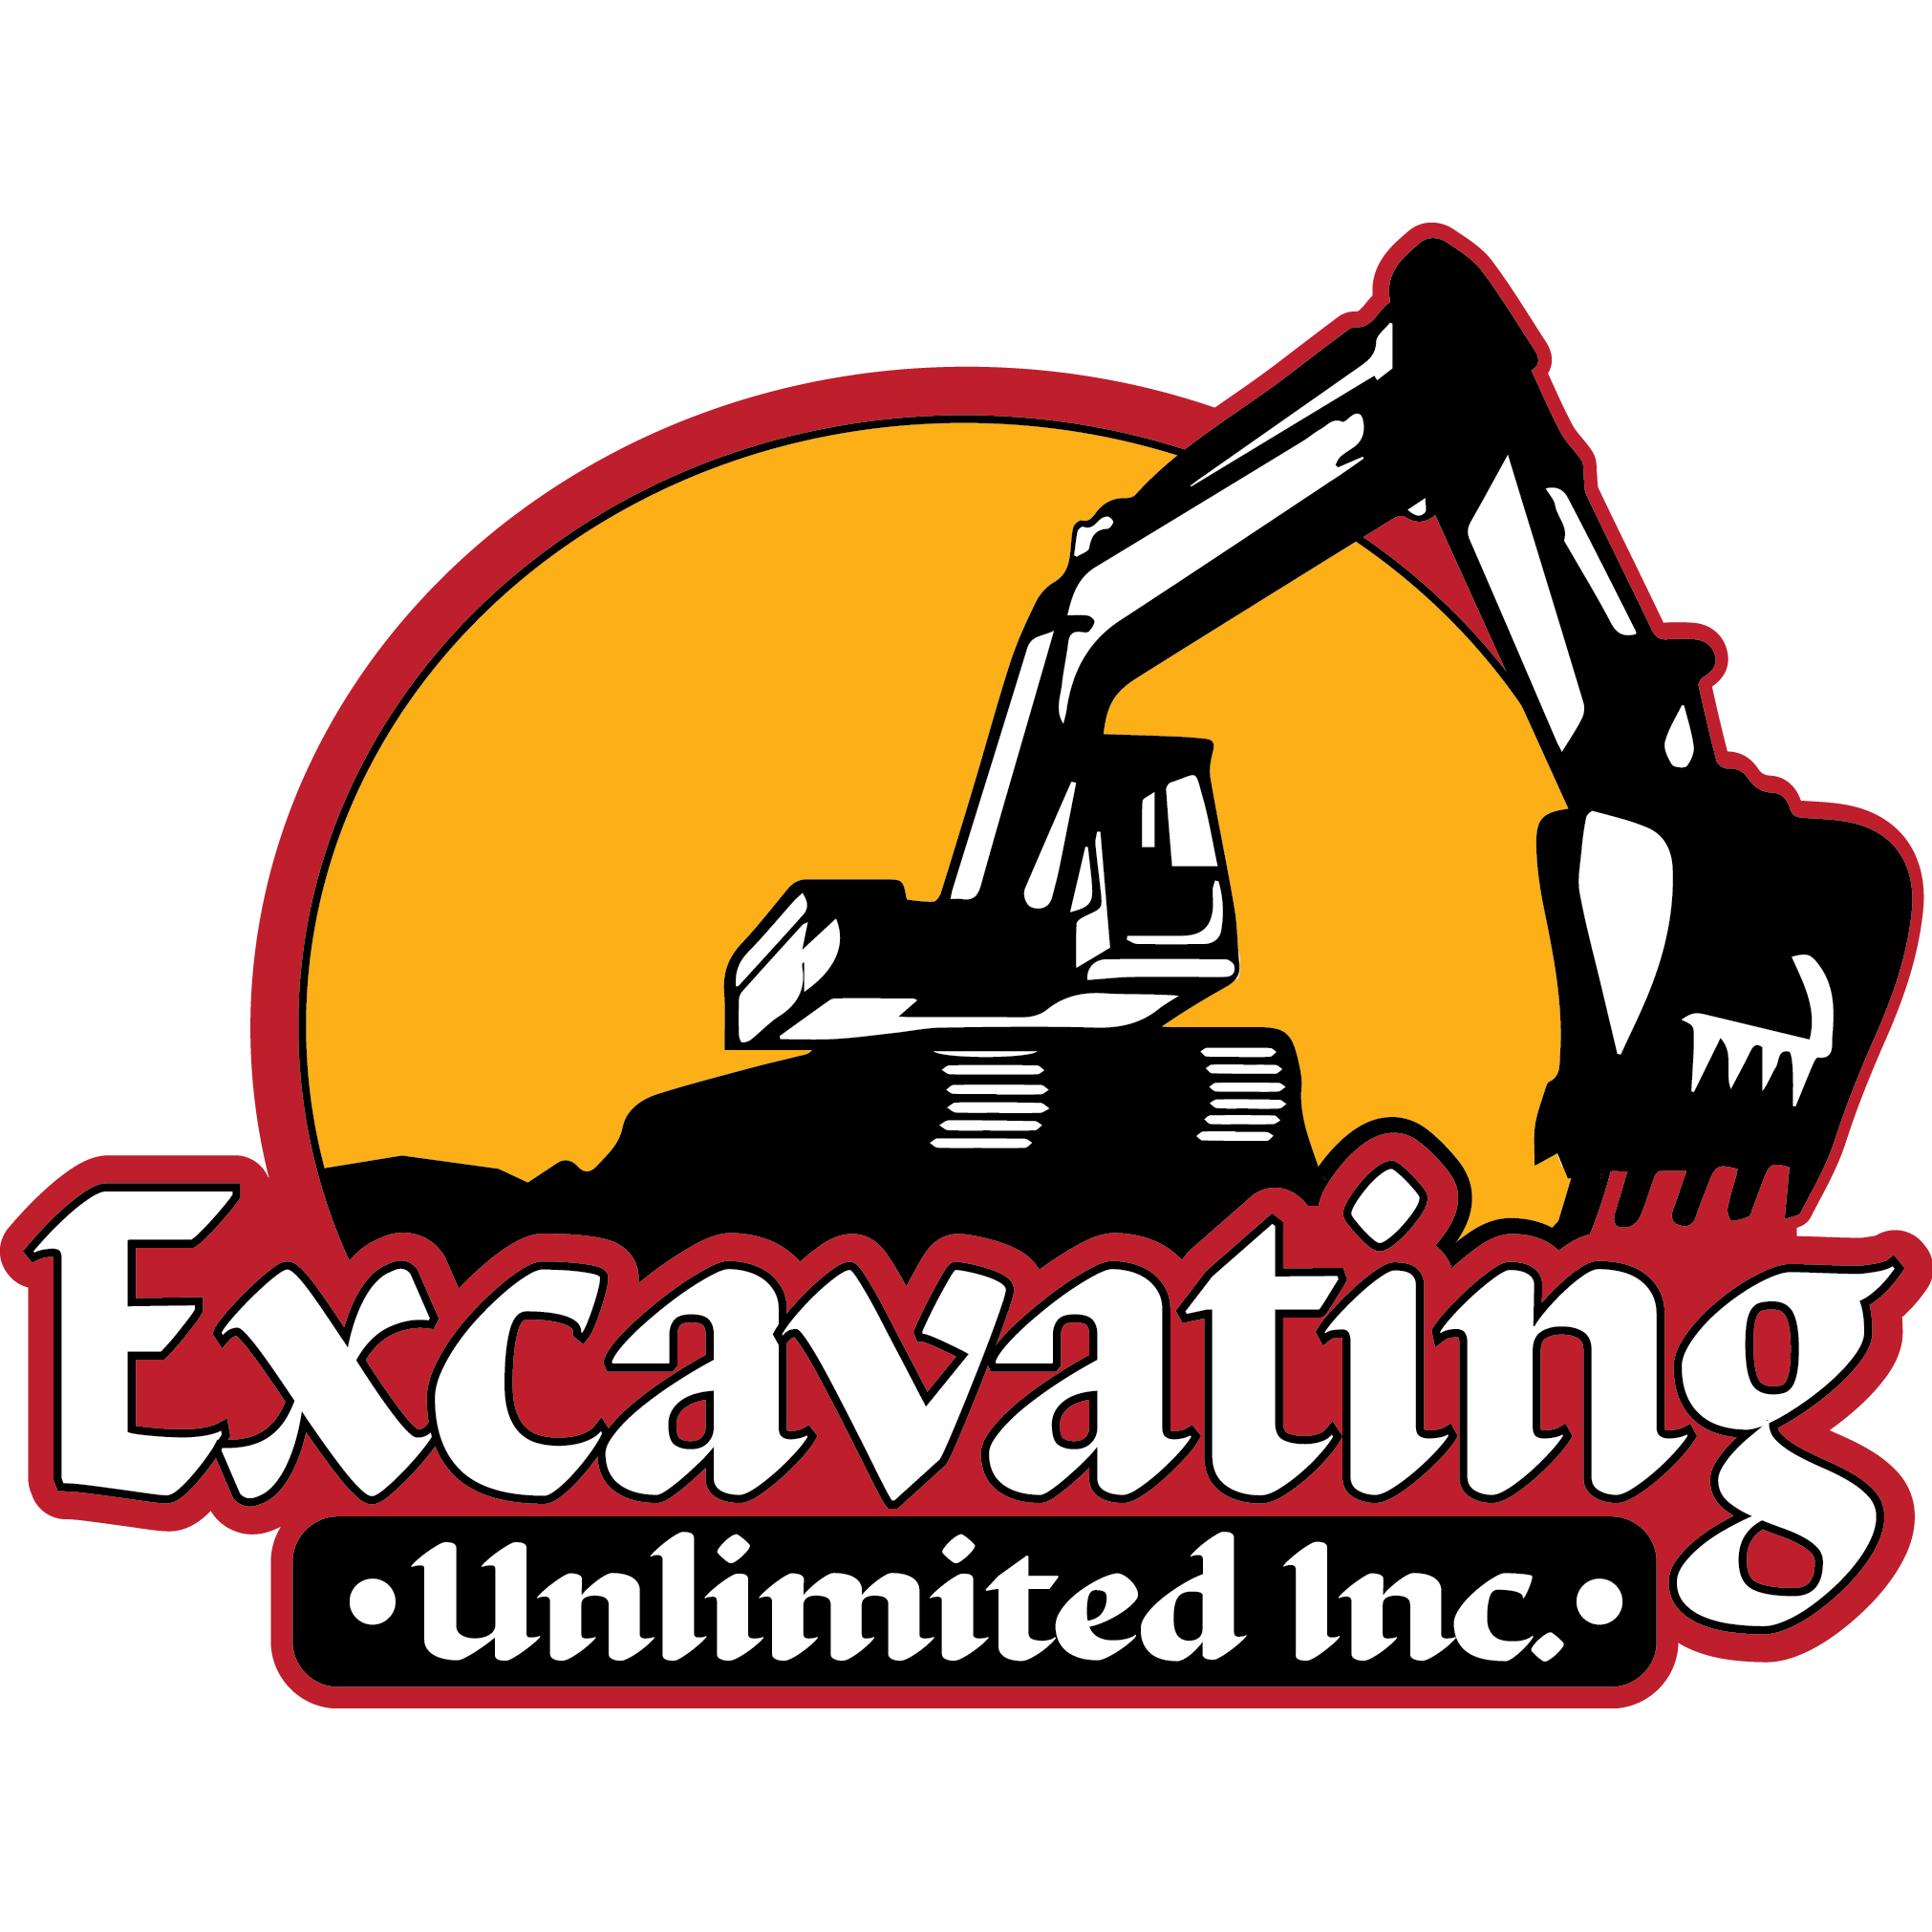 Excavating Unlimited, Inc.